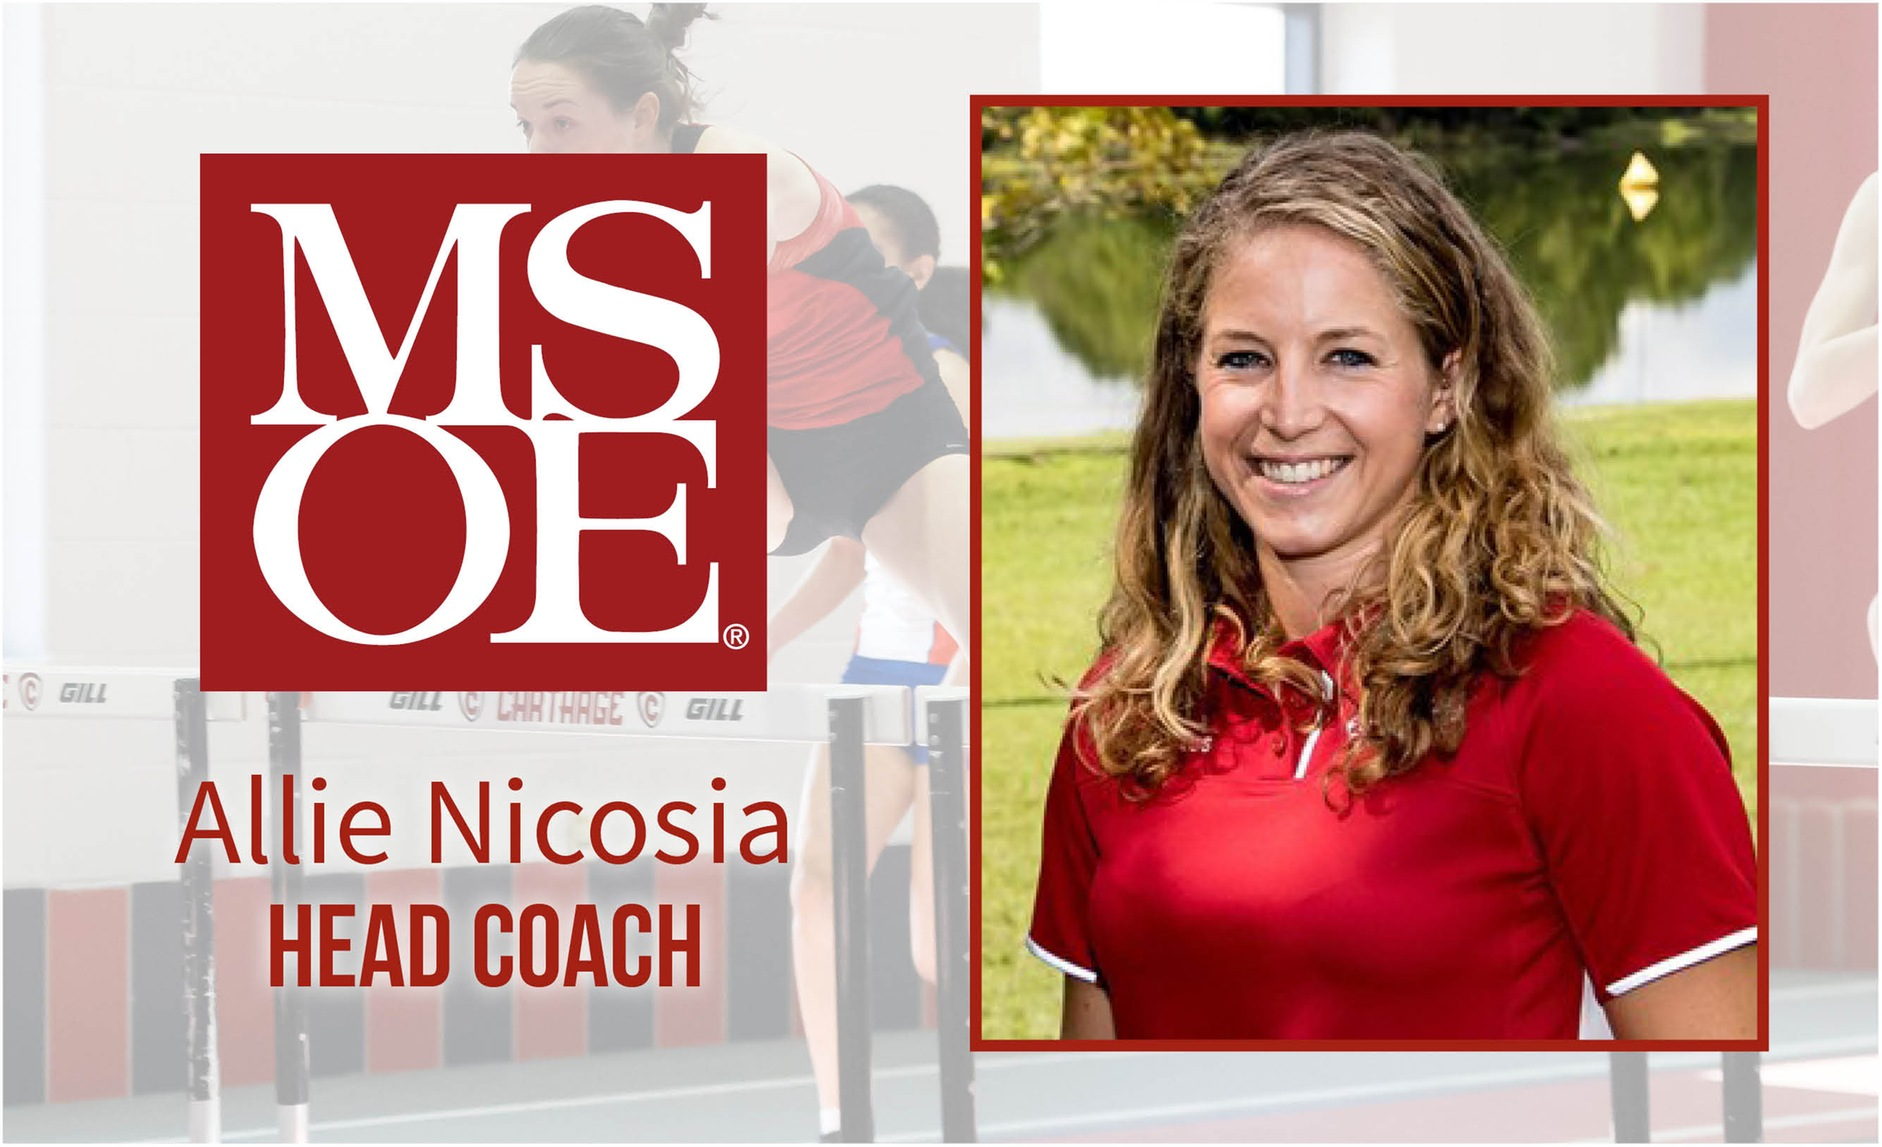 Nicosia to Lead MSOE Women's Triathlon, Track & Field, and Cross Country